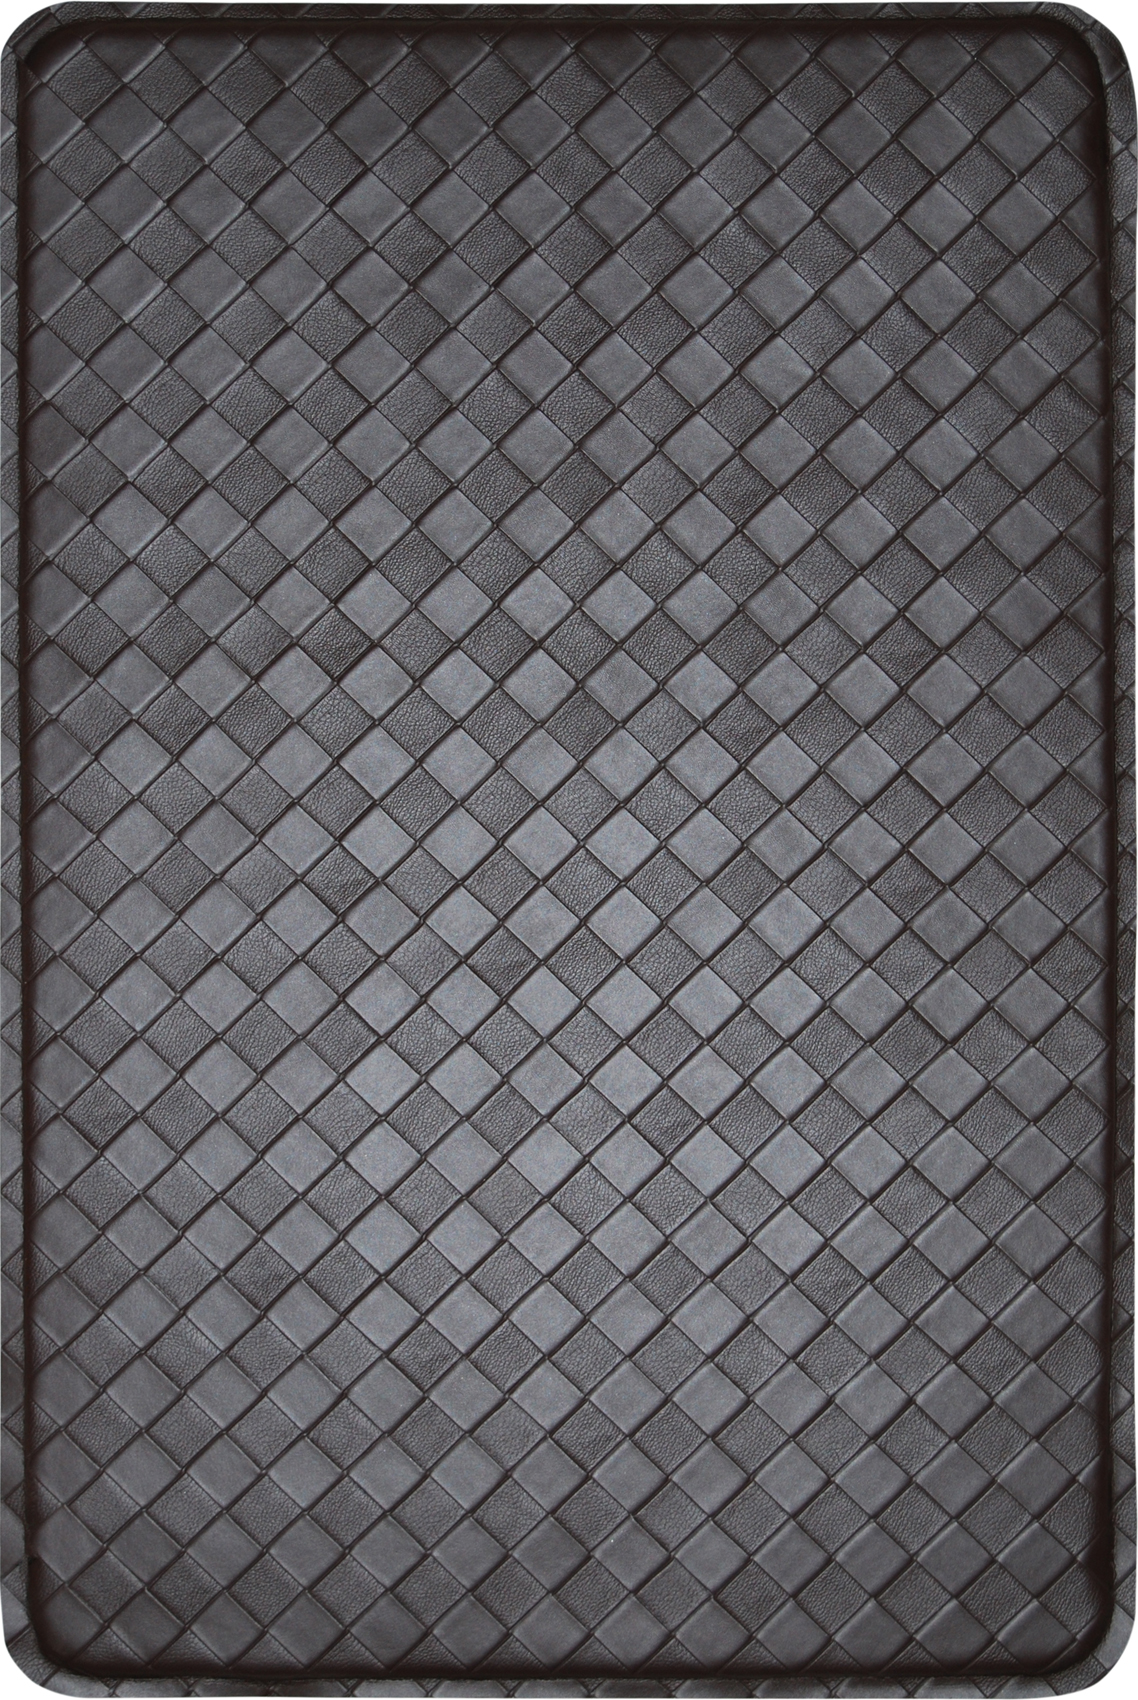 modern indoor cushion kitchen rug anti-fatigue floor mat - actual